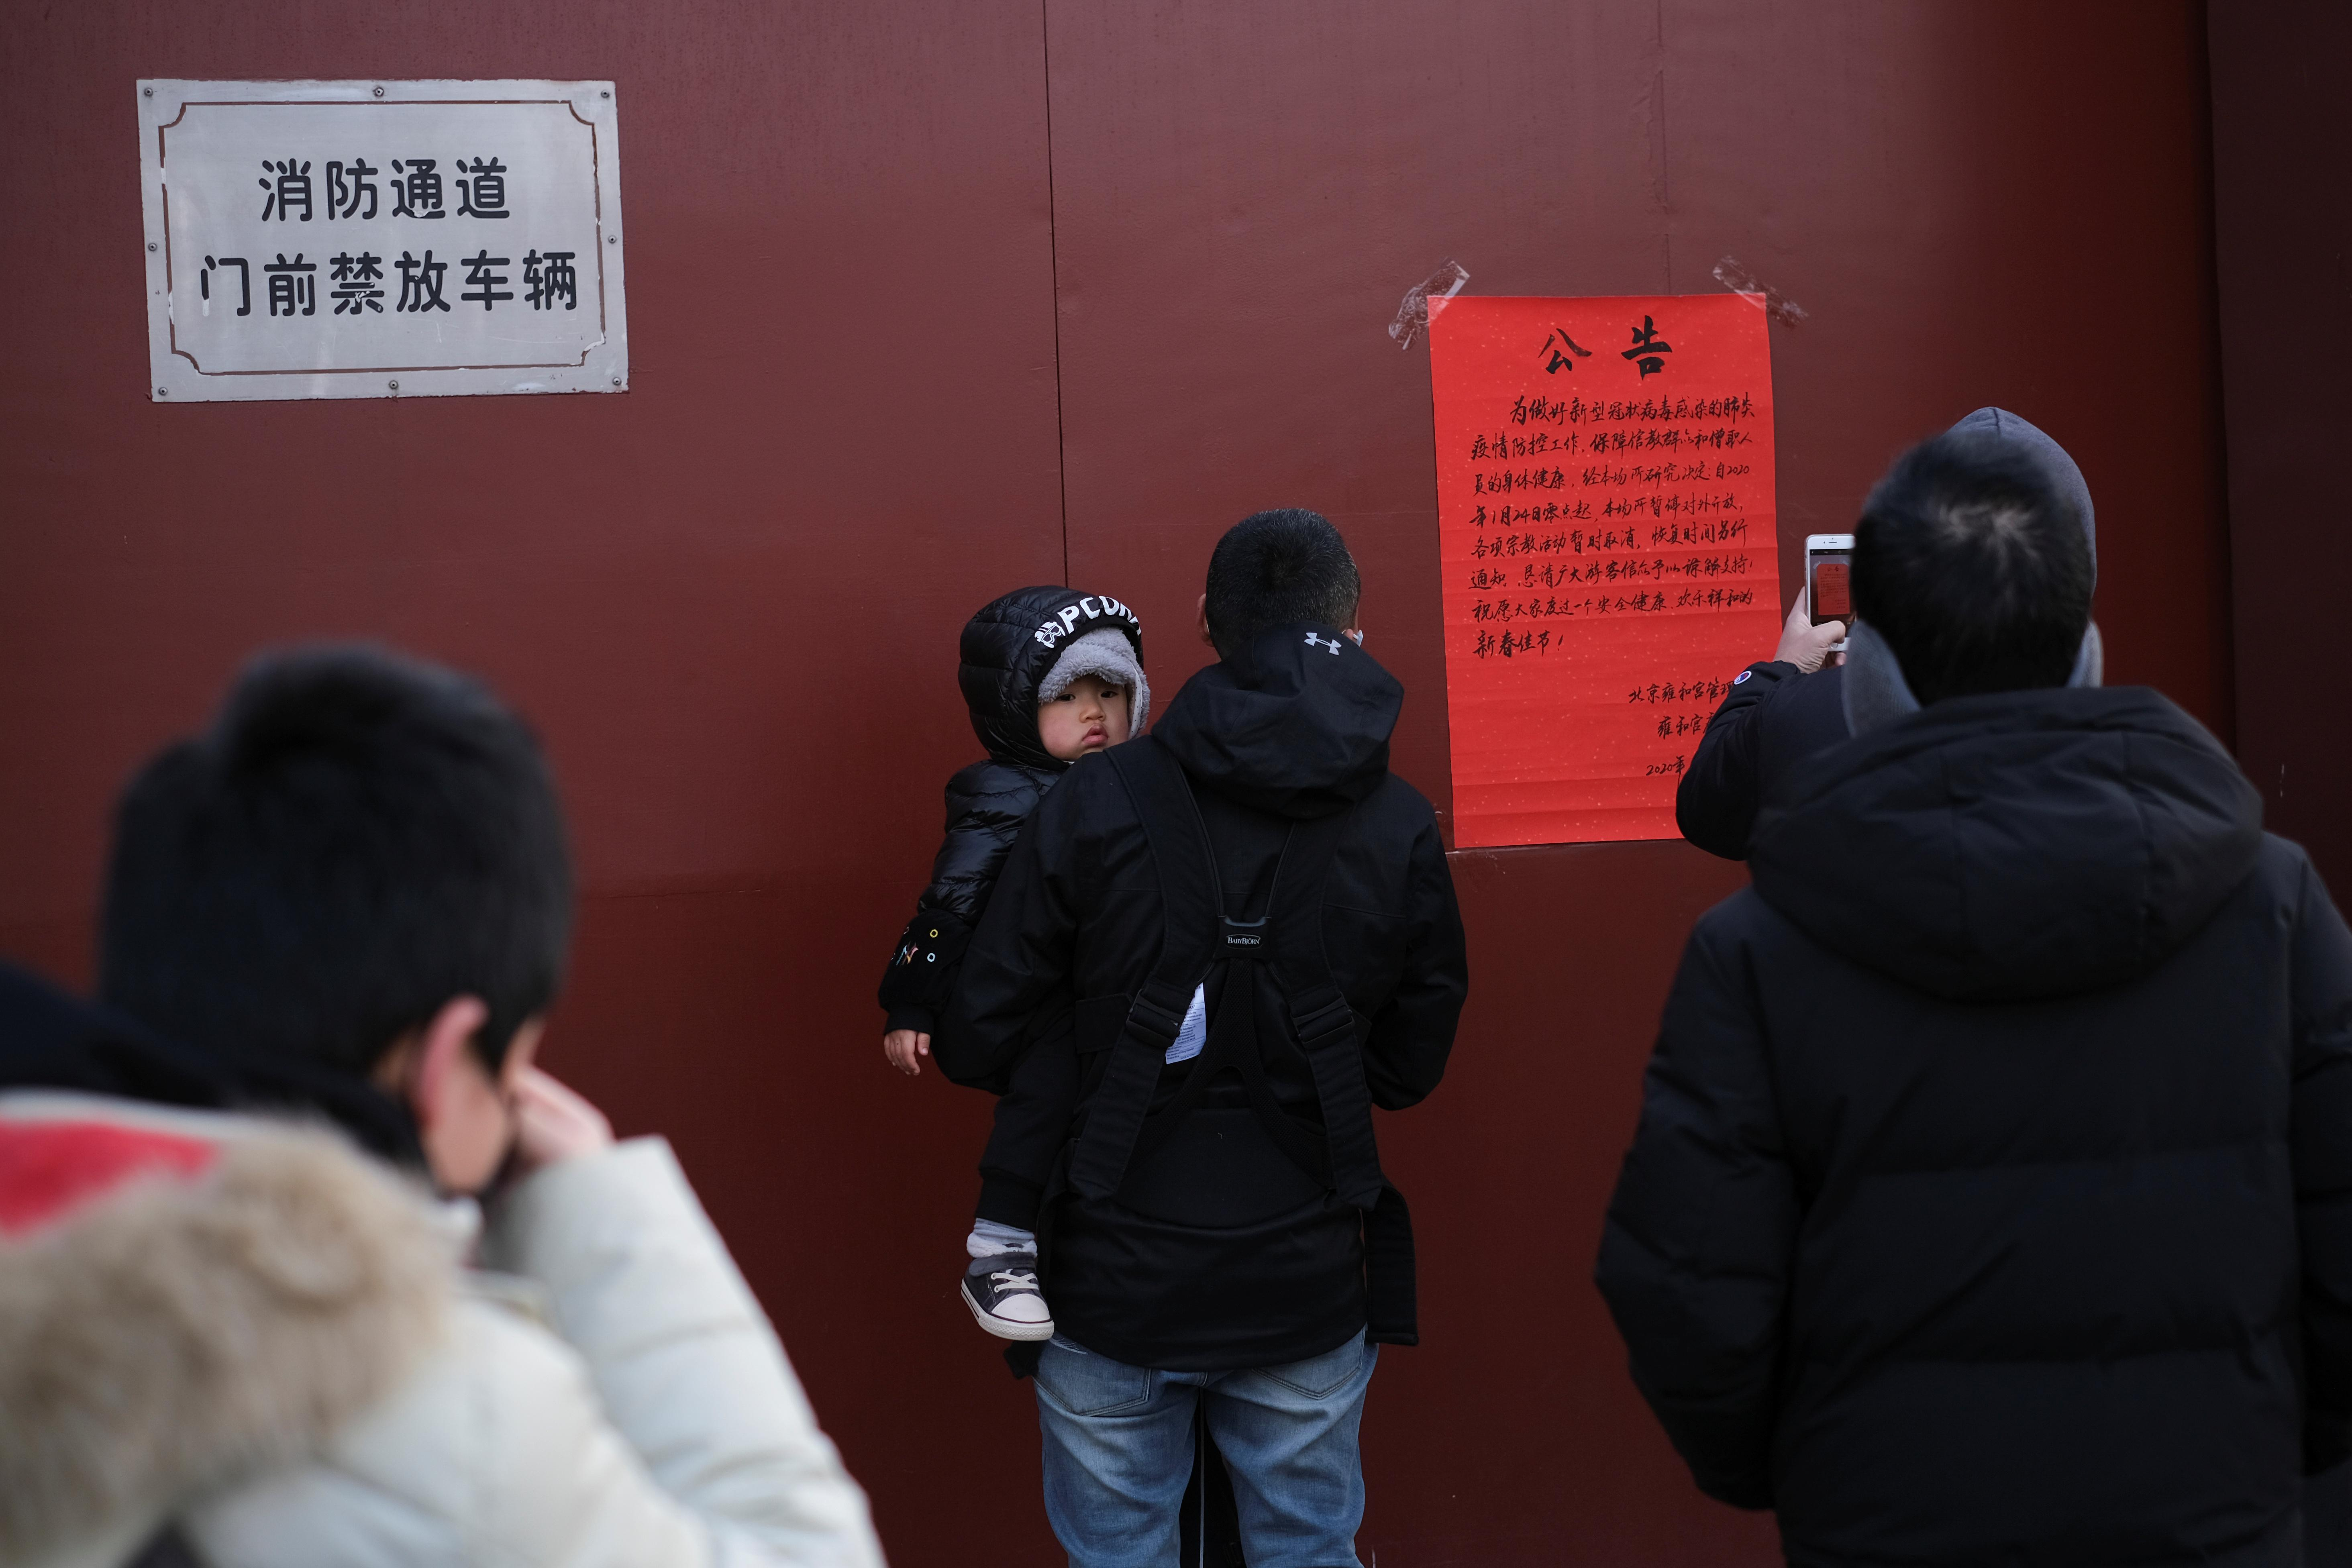 China shuts down transport, temples as virus death toll rises to 25